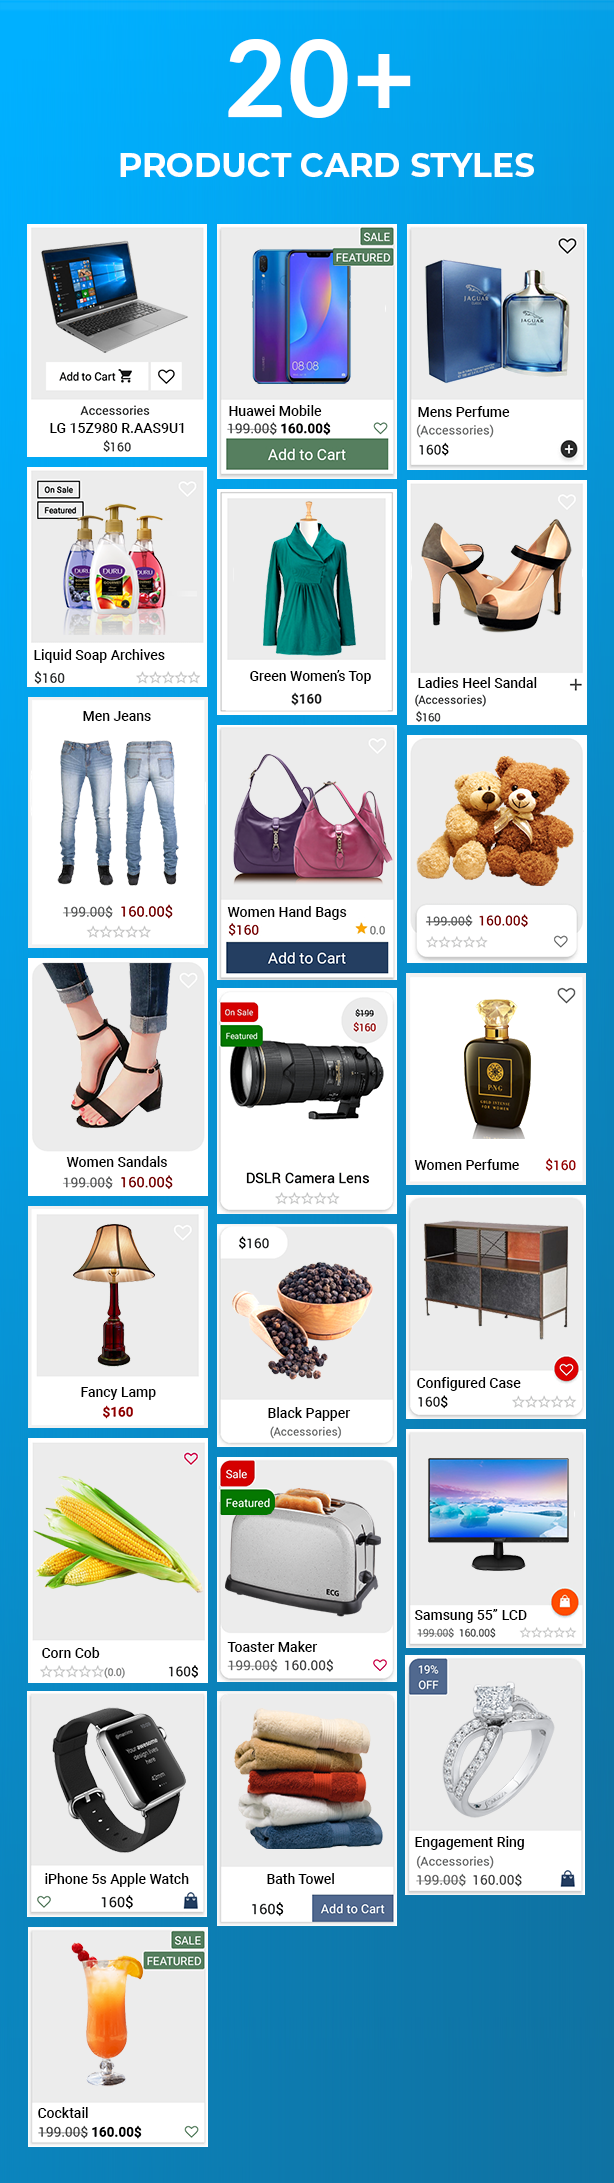 Ionic5 Ecommerce - Universal iOS & Android Ecommerce / Store Full Mobile App with Laravel CMS - 10